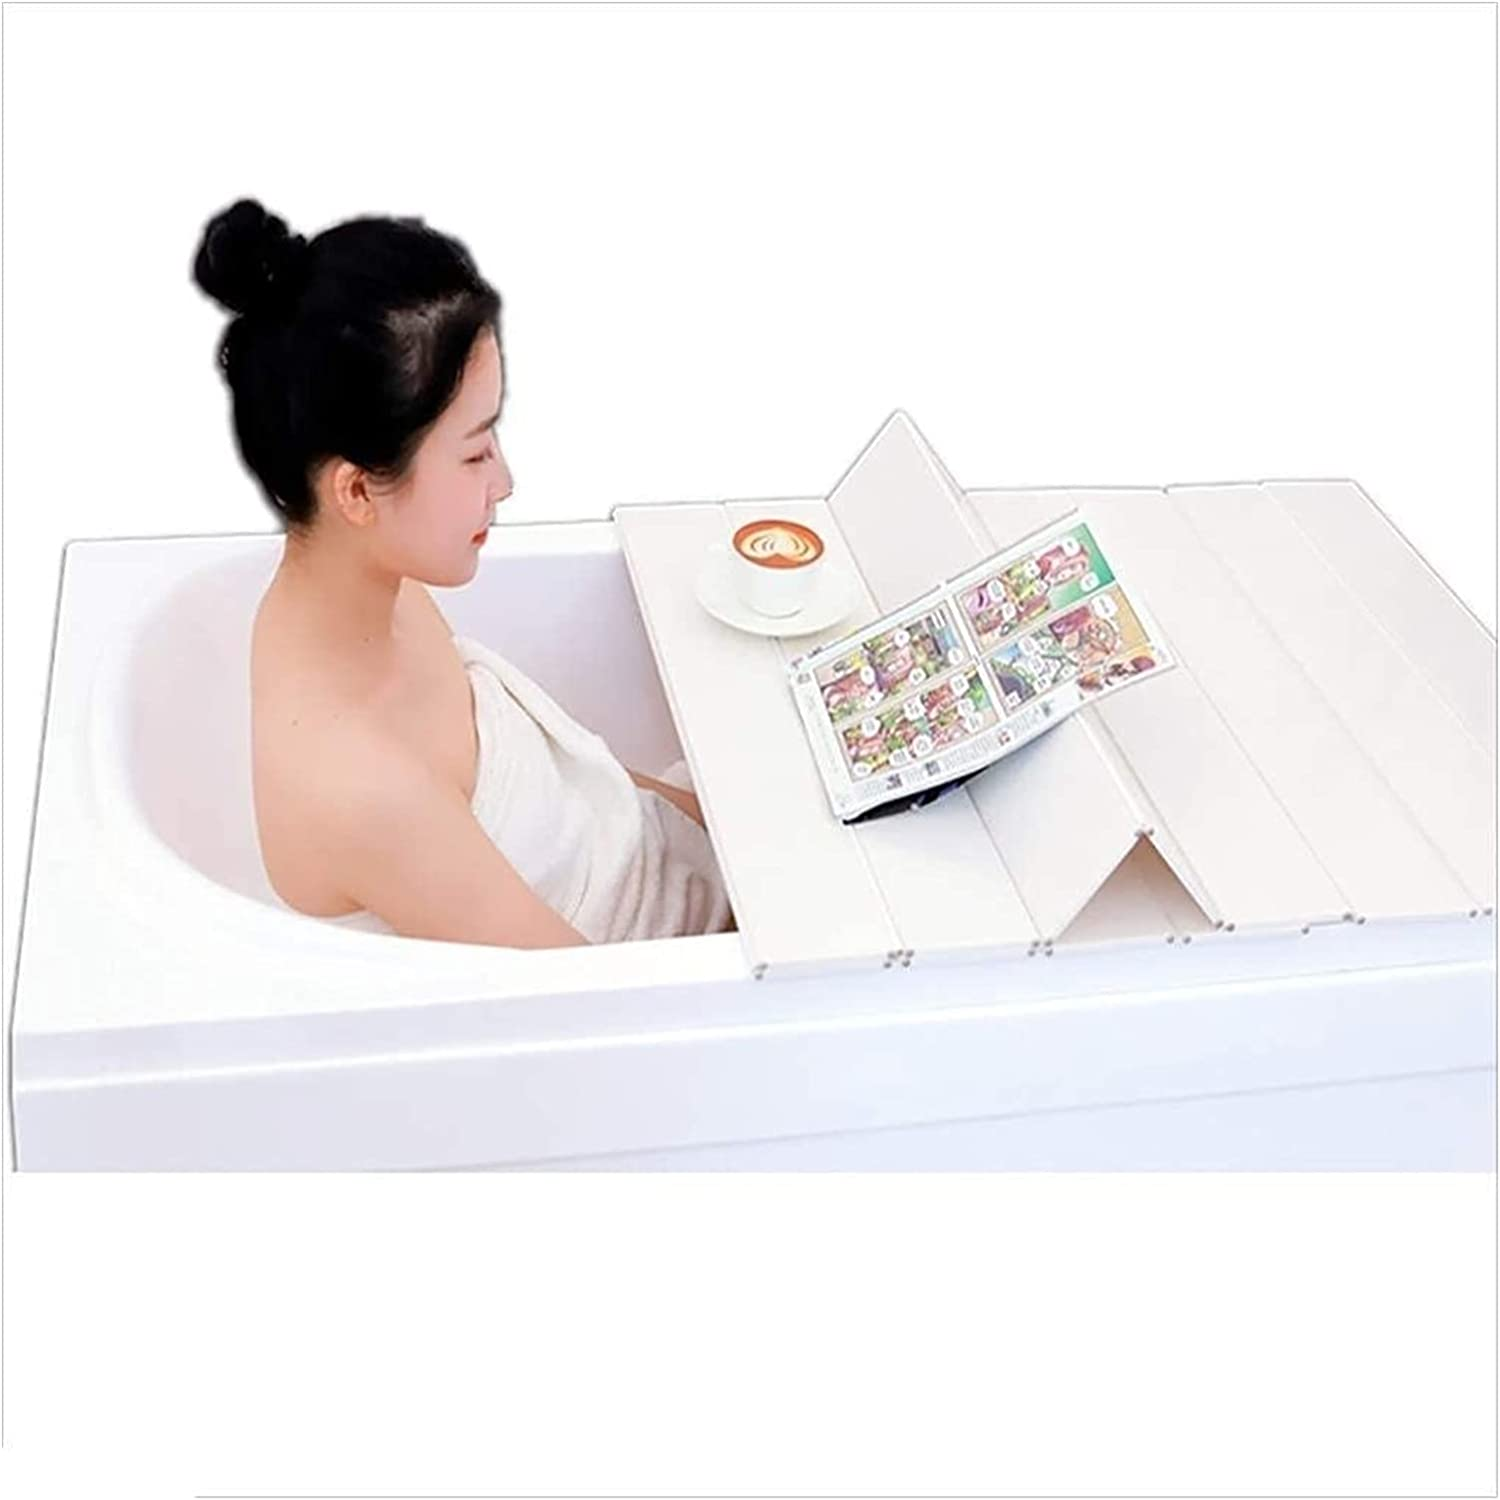 Lieber Lighting Bathtub OFFicial Cylinder Cover Manufacturer regenerated product Insulation